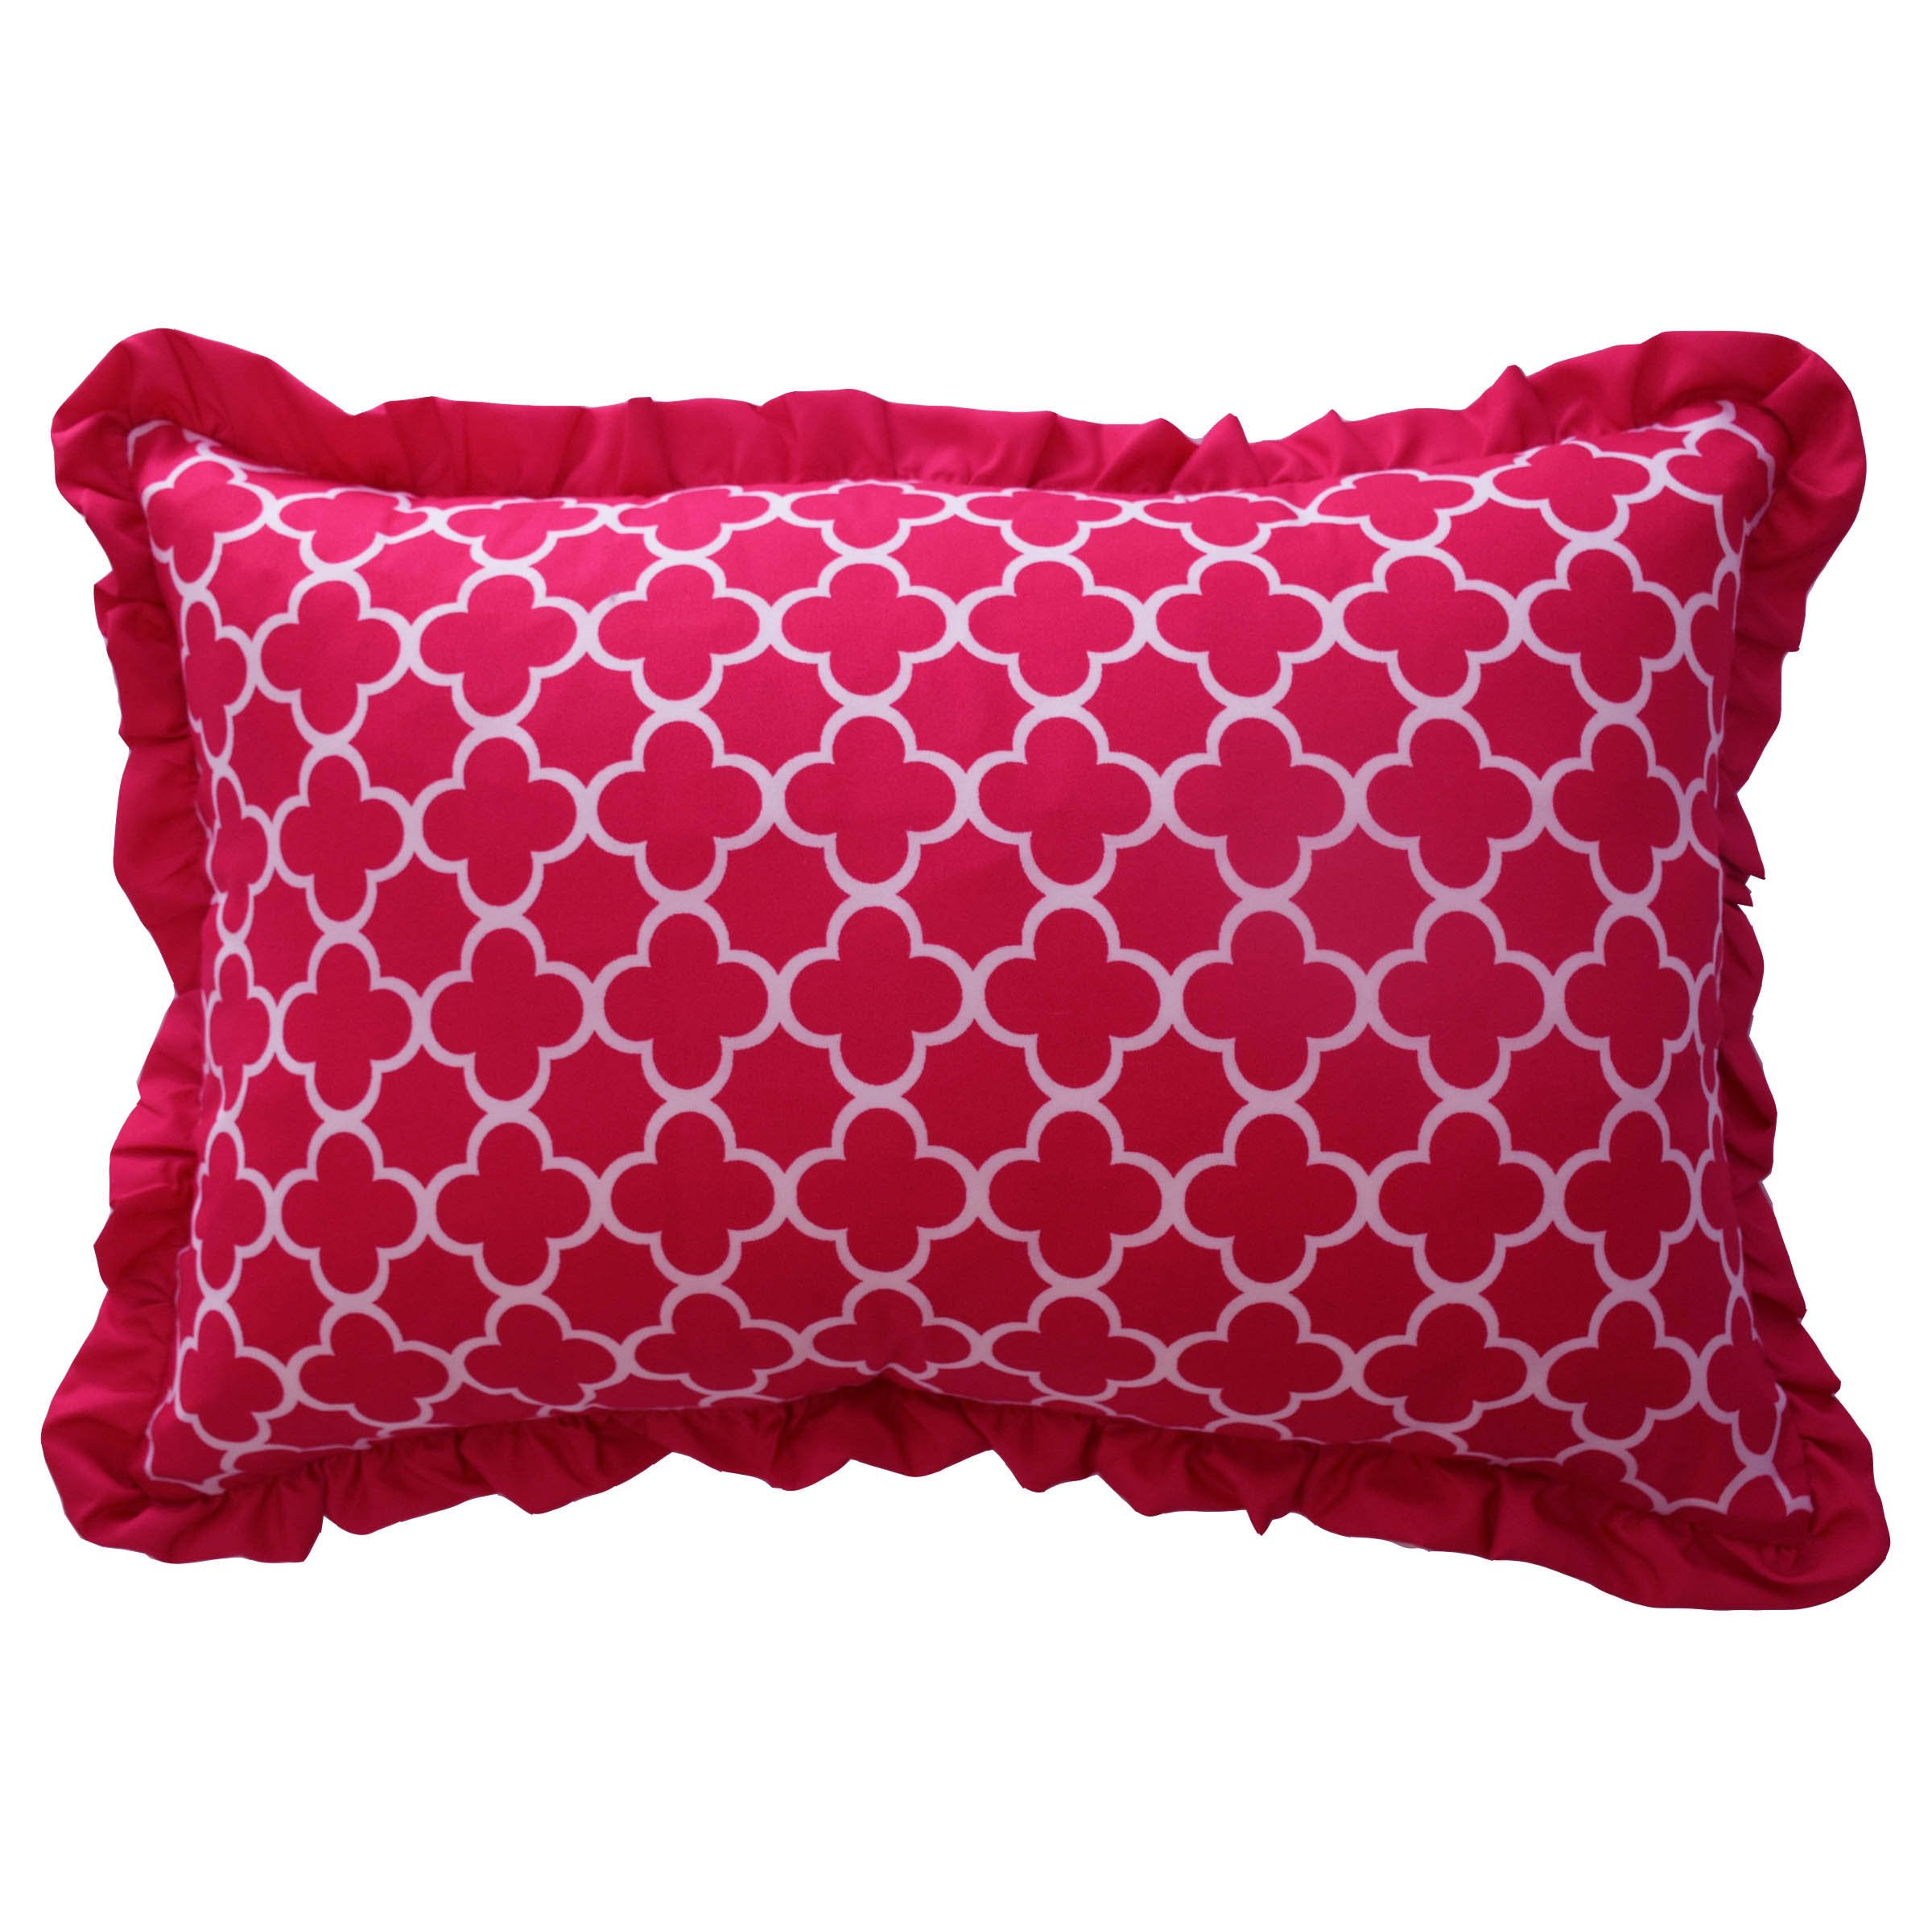 WAVERLY Kids Reverie Decorative Pillow, 12'' x 18'', Pink by WAVERLY